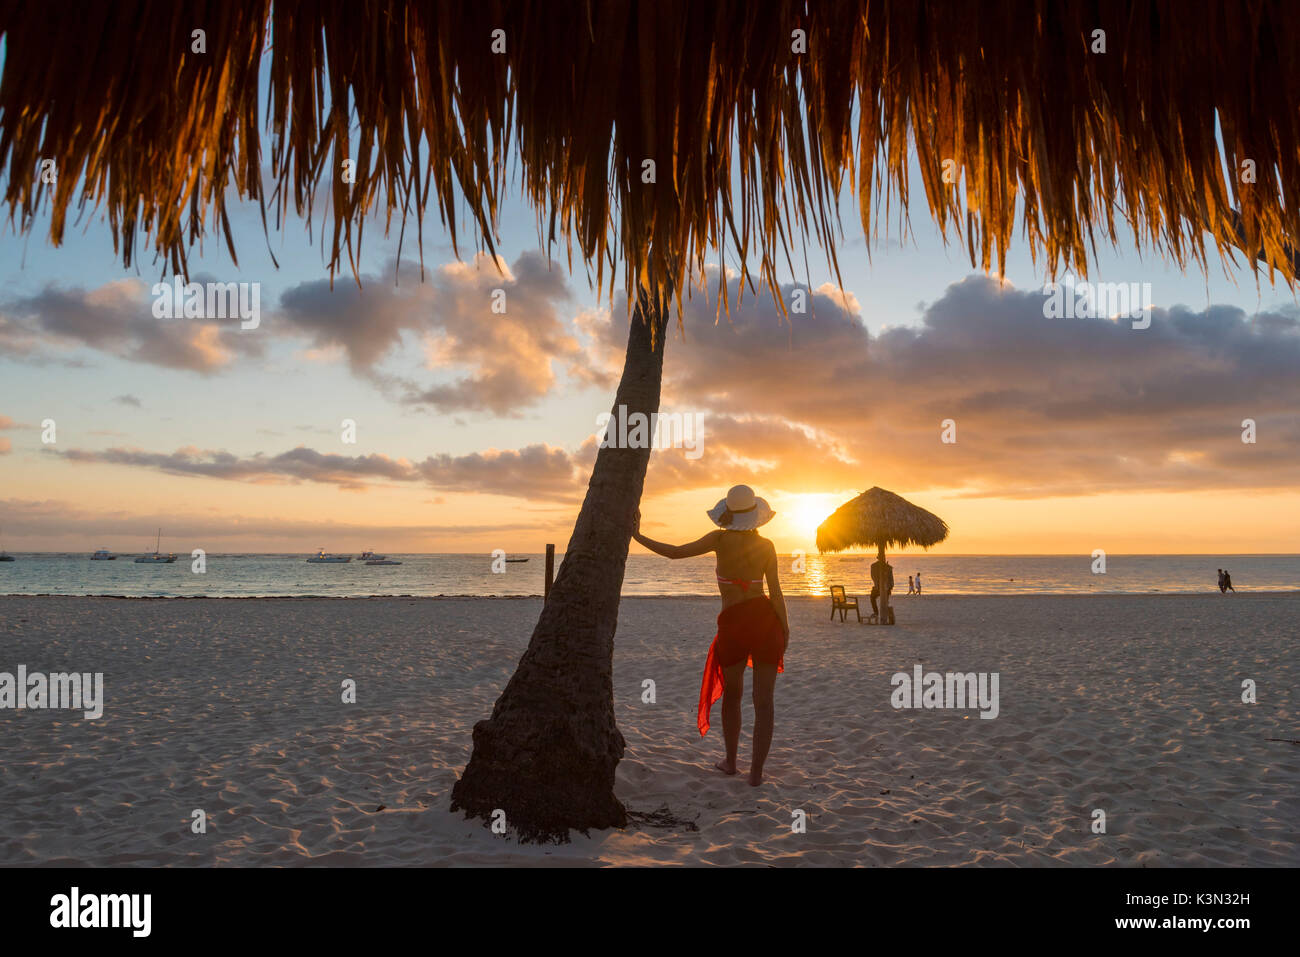 Bavaro Beach, Bavaro, Higuey, Punta Cana, Dominican Republic. Woman by thatch umbrellas on the beach at sunrise (MR). - Stock Image